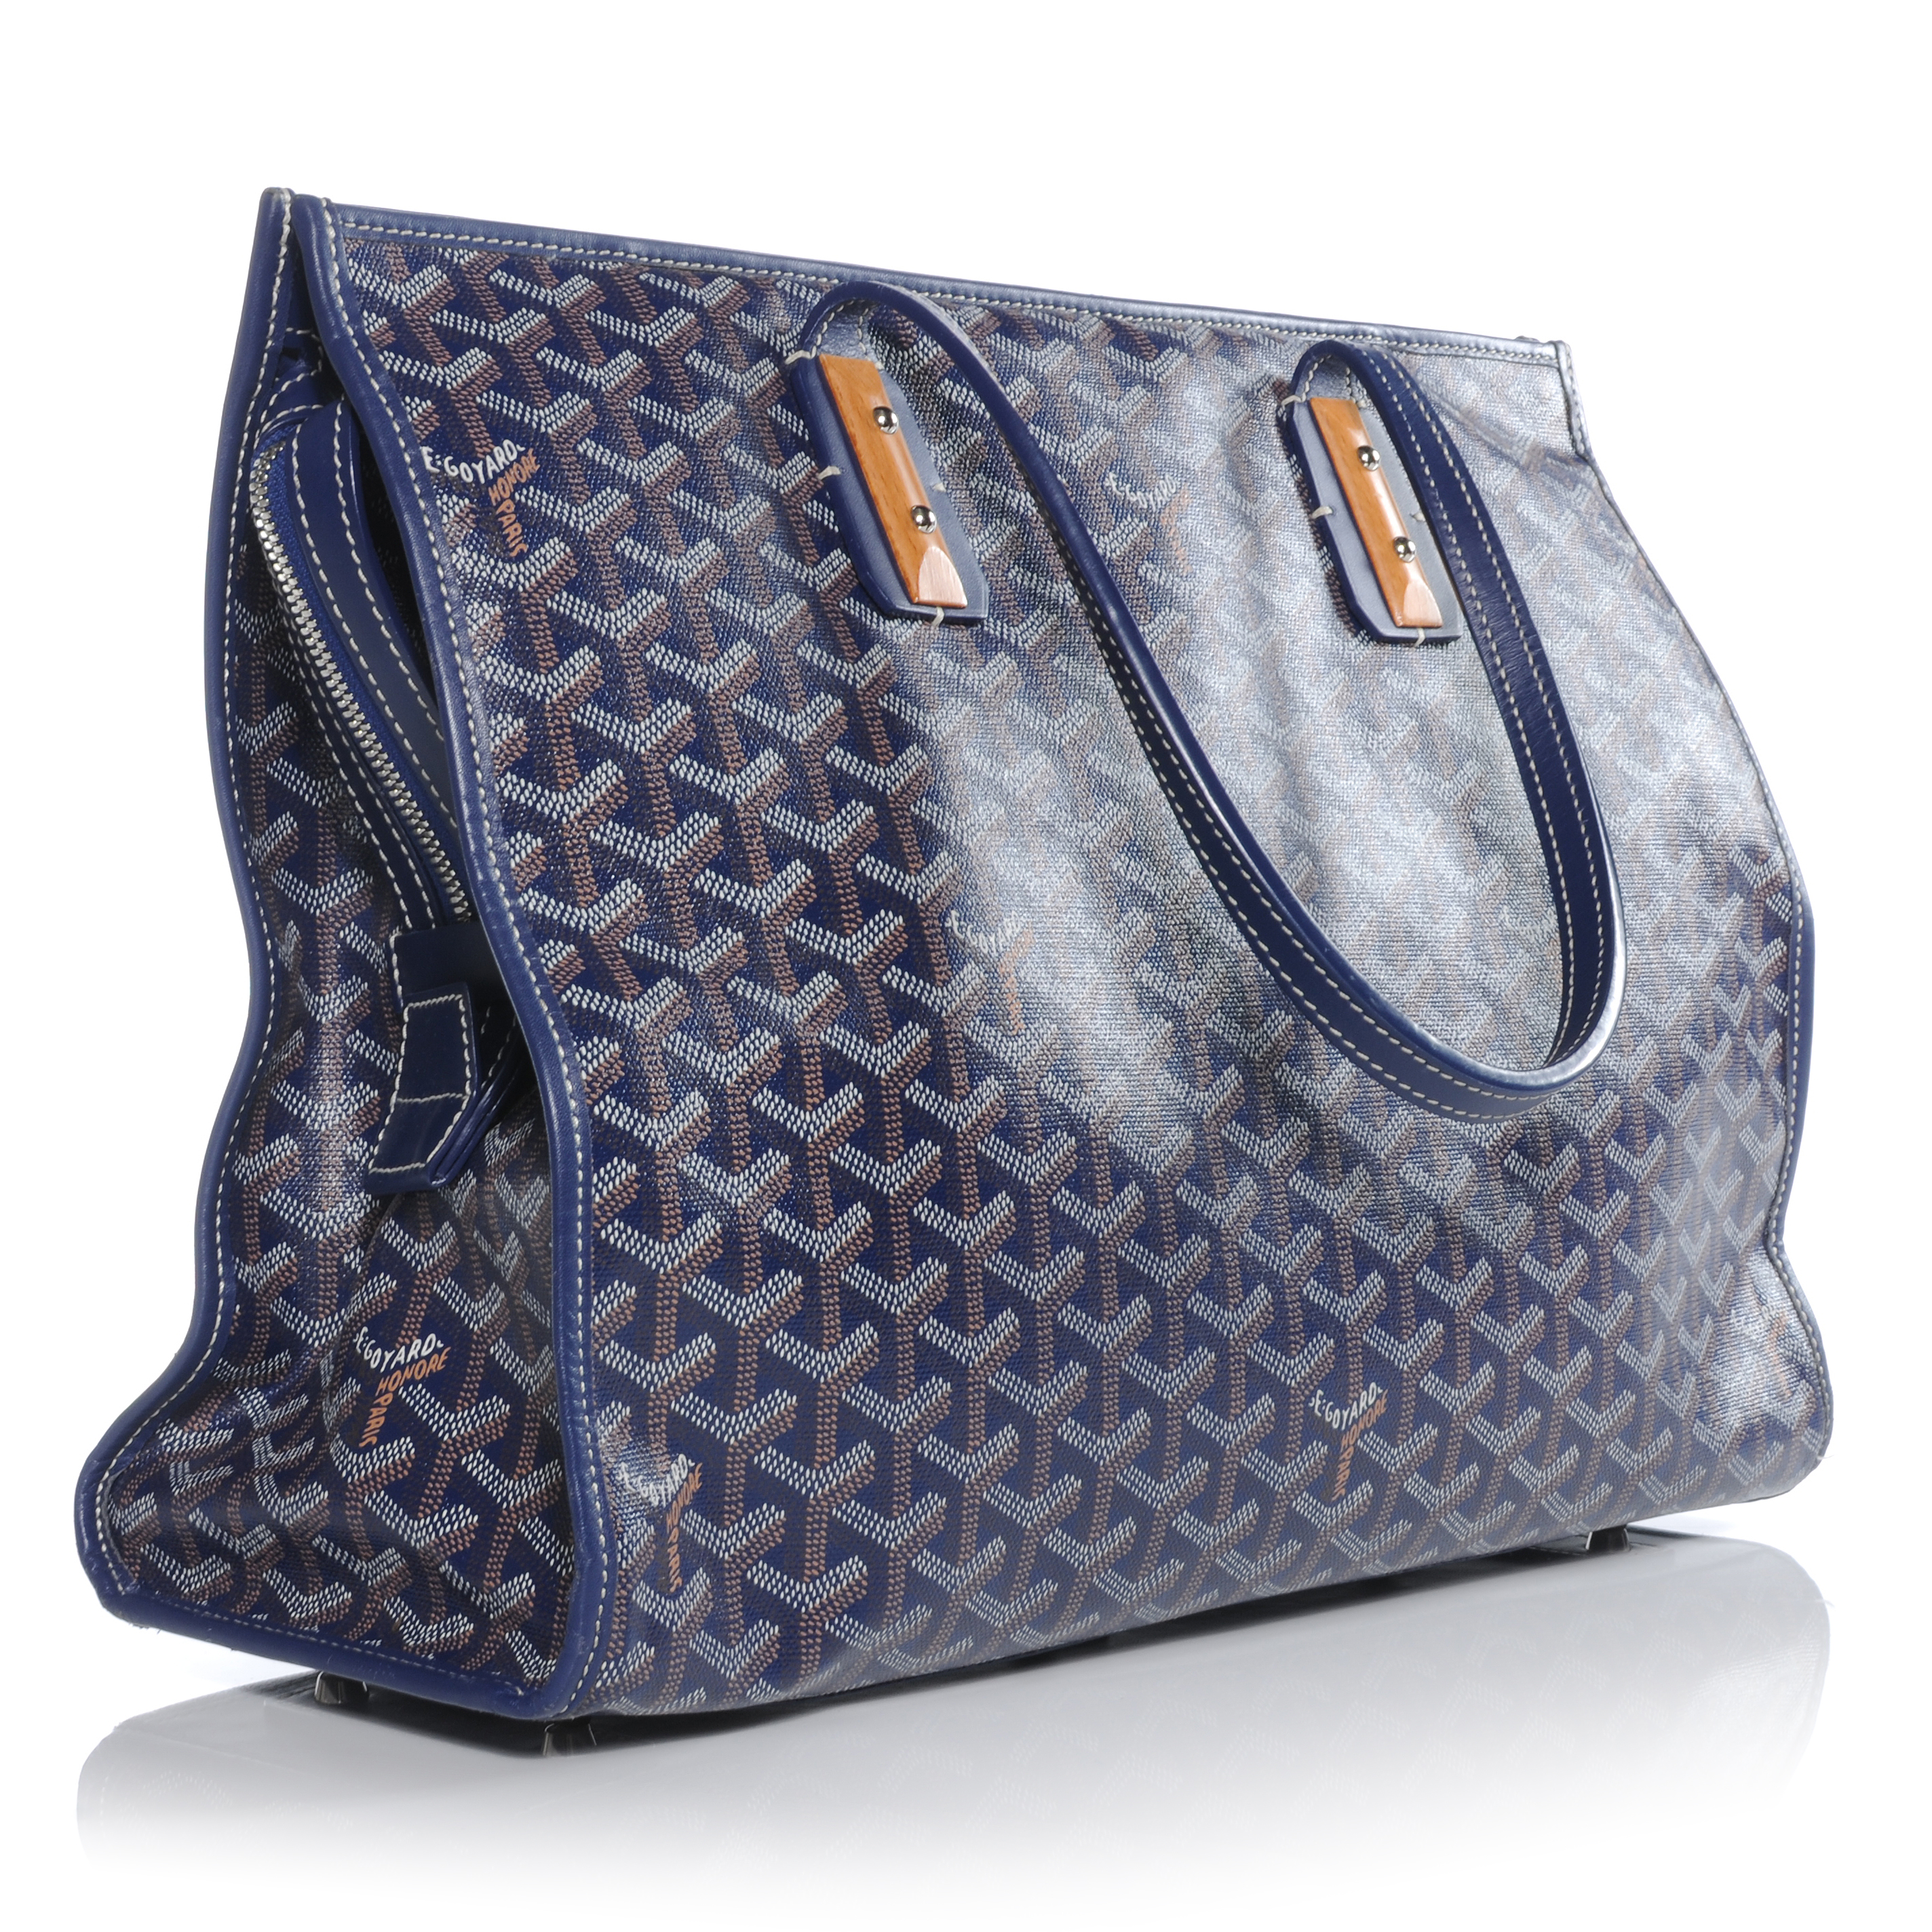 Top 3 Designer Bags That Double as a Diaper Bag 00e1f6d8b5222